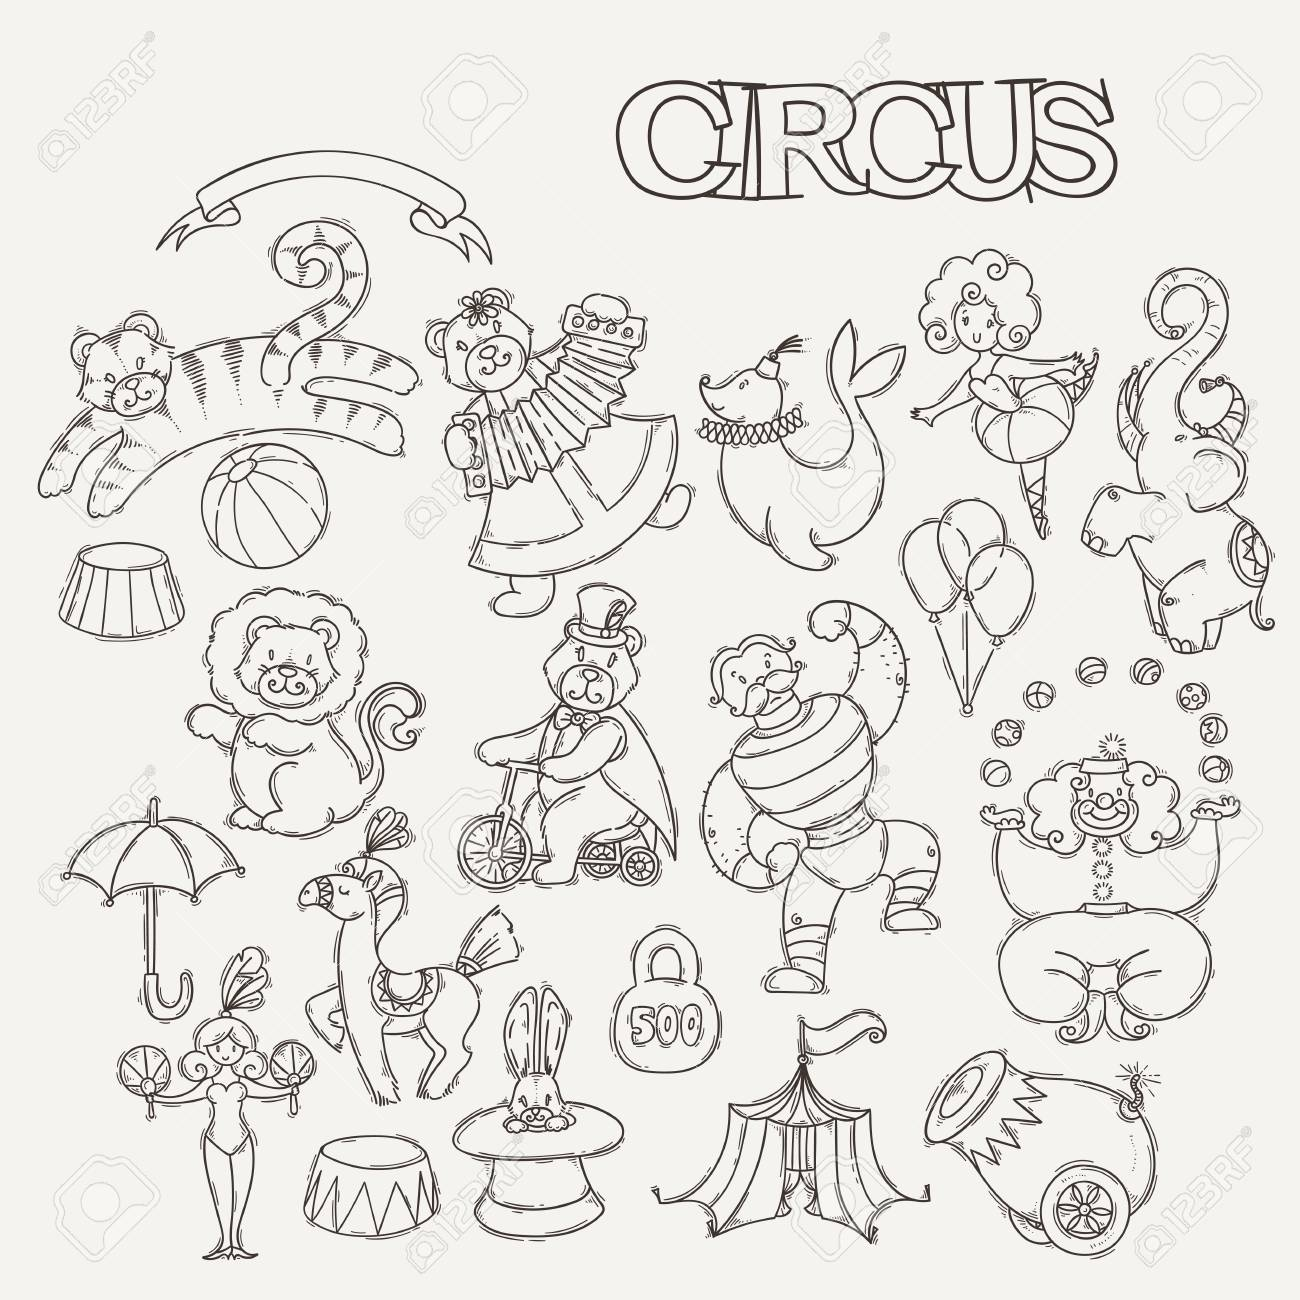 Circus cartoon icons collection with chapiteau tent and trained wild animals. Vector doodle coloring set  sc 1 st  123RF & Circus Cartoon Icons Collection With Chapiteau Tent And Trained ...